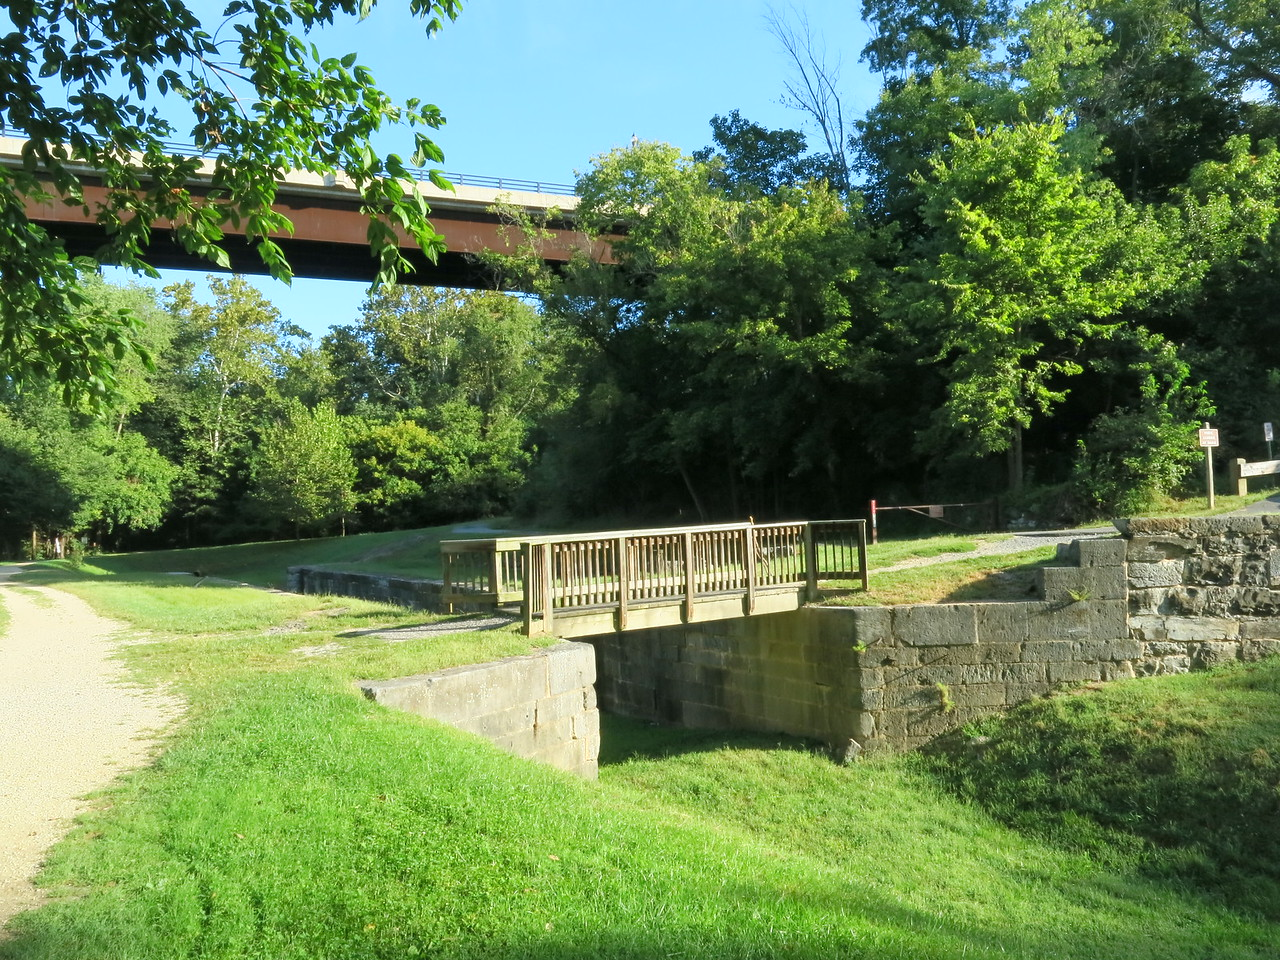 Downstream end of Lock 38 with the car bridge above